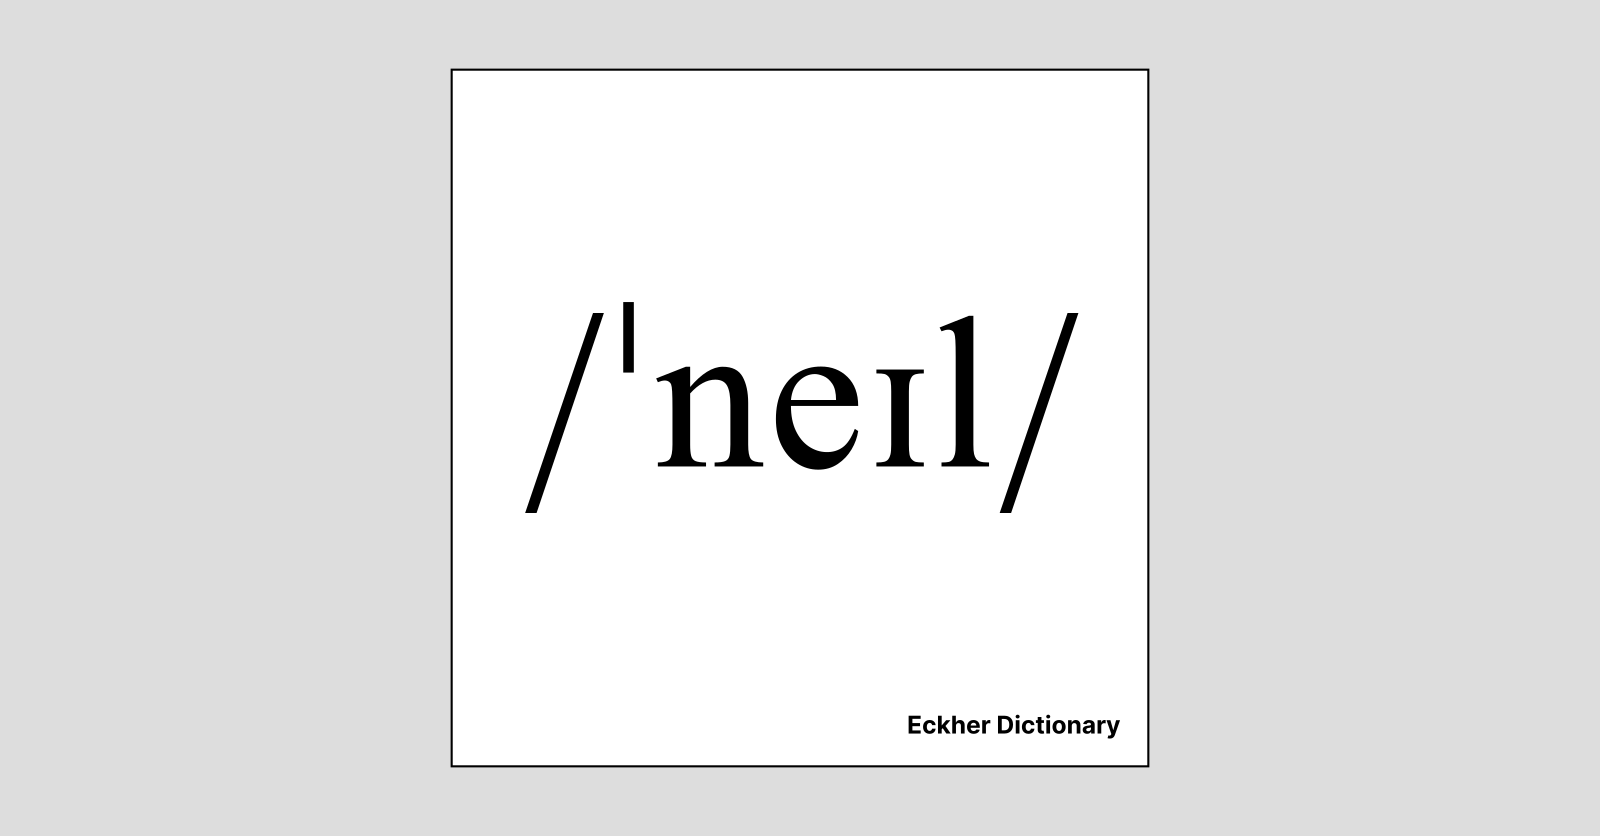 nail - Eckher Dictionary